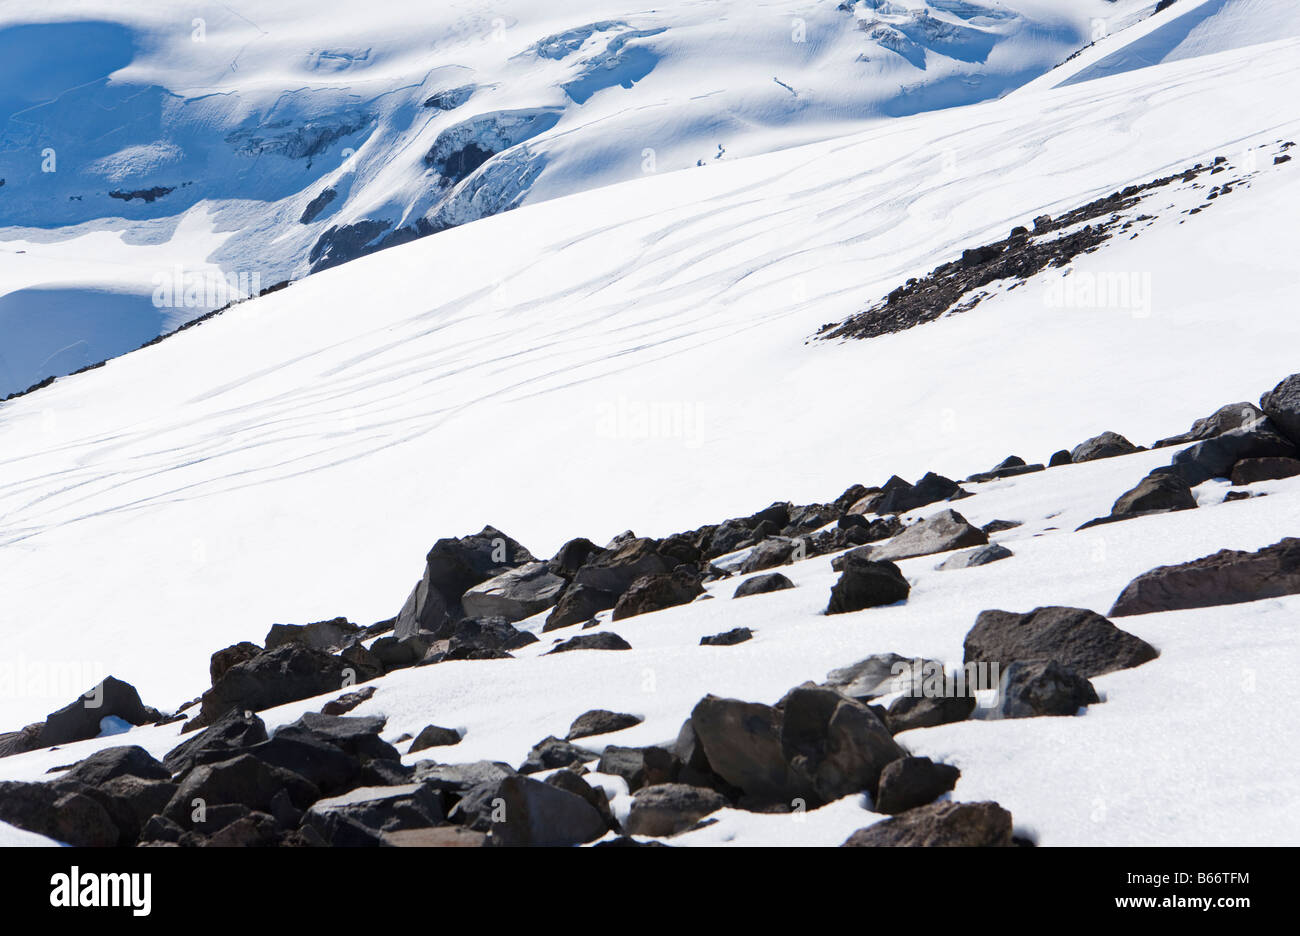 Melting snow revealing rocks on Mt Rainier with ski tracks in the distance - Stock Image